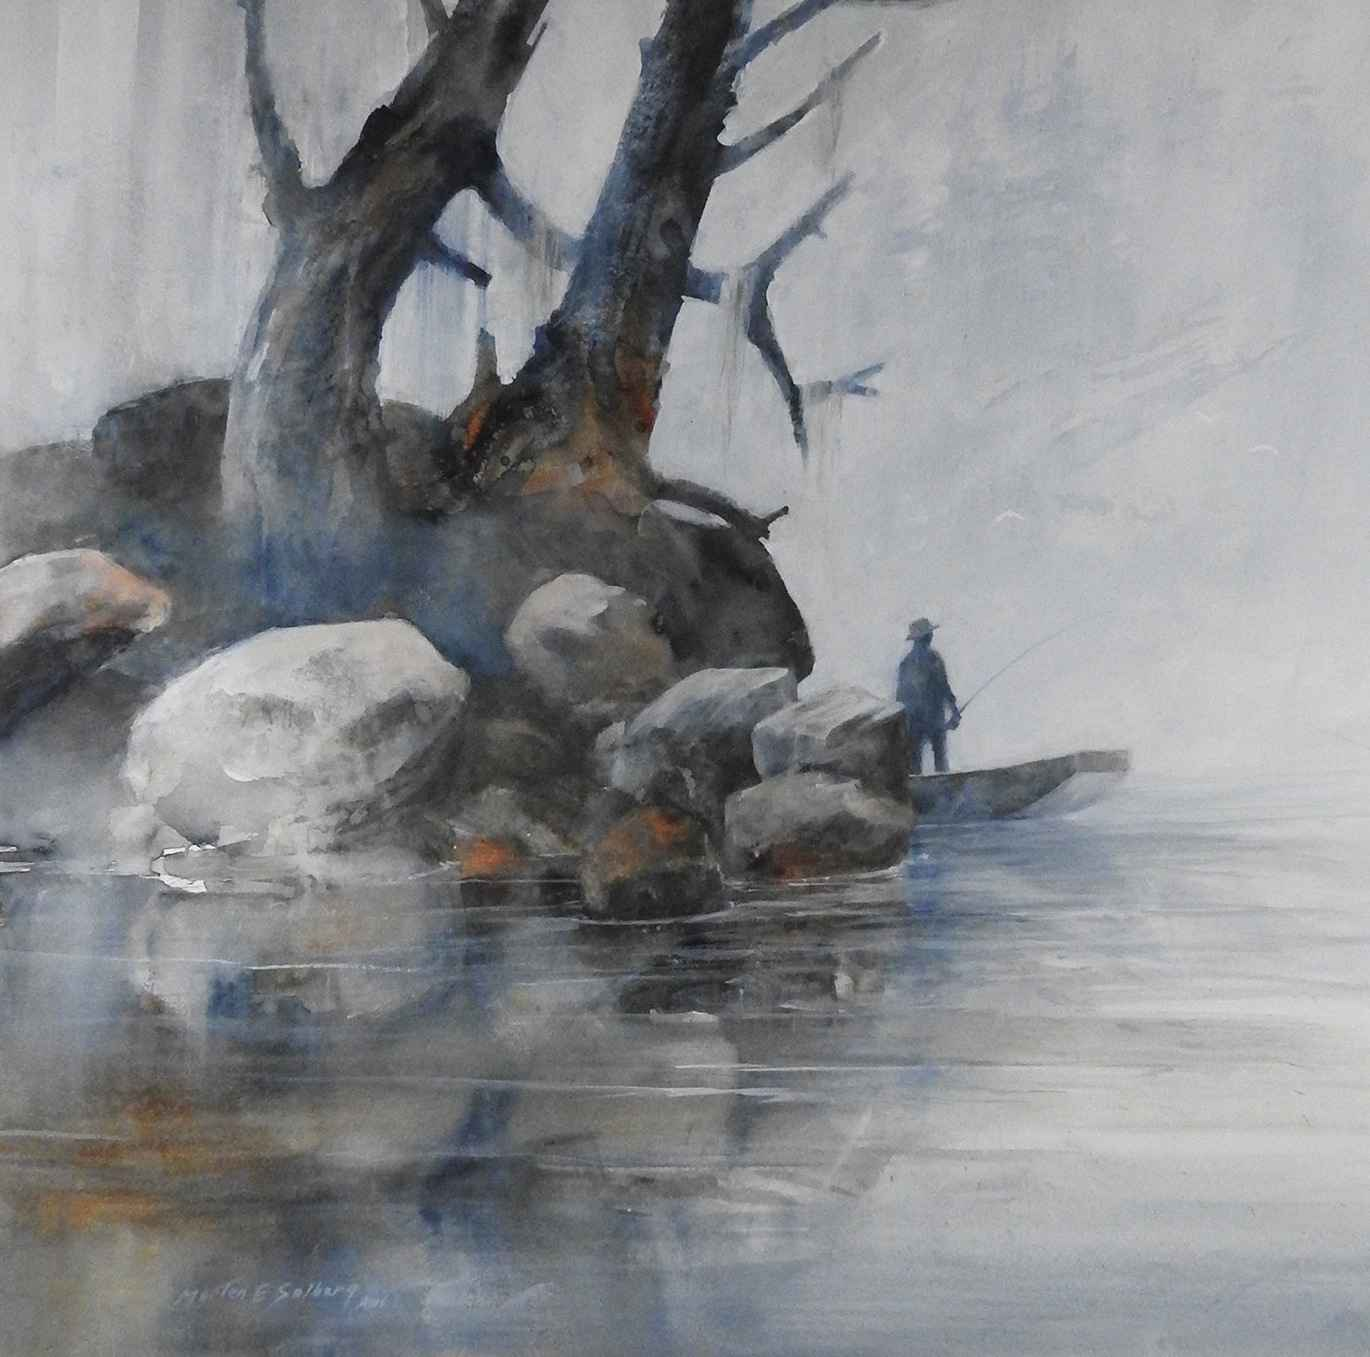 Fishing the Backwaters by  Morten E. Solberg - Masterpiece Online